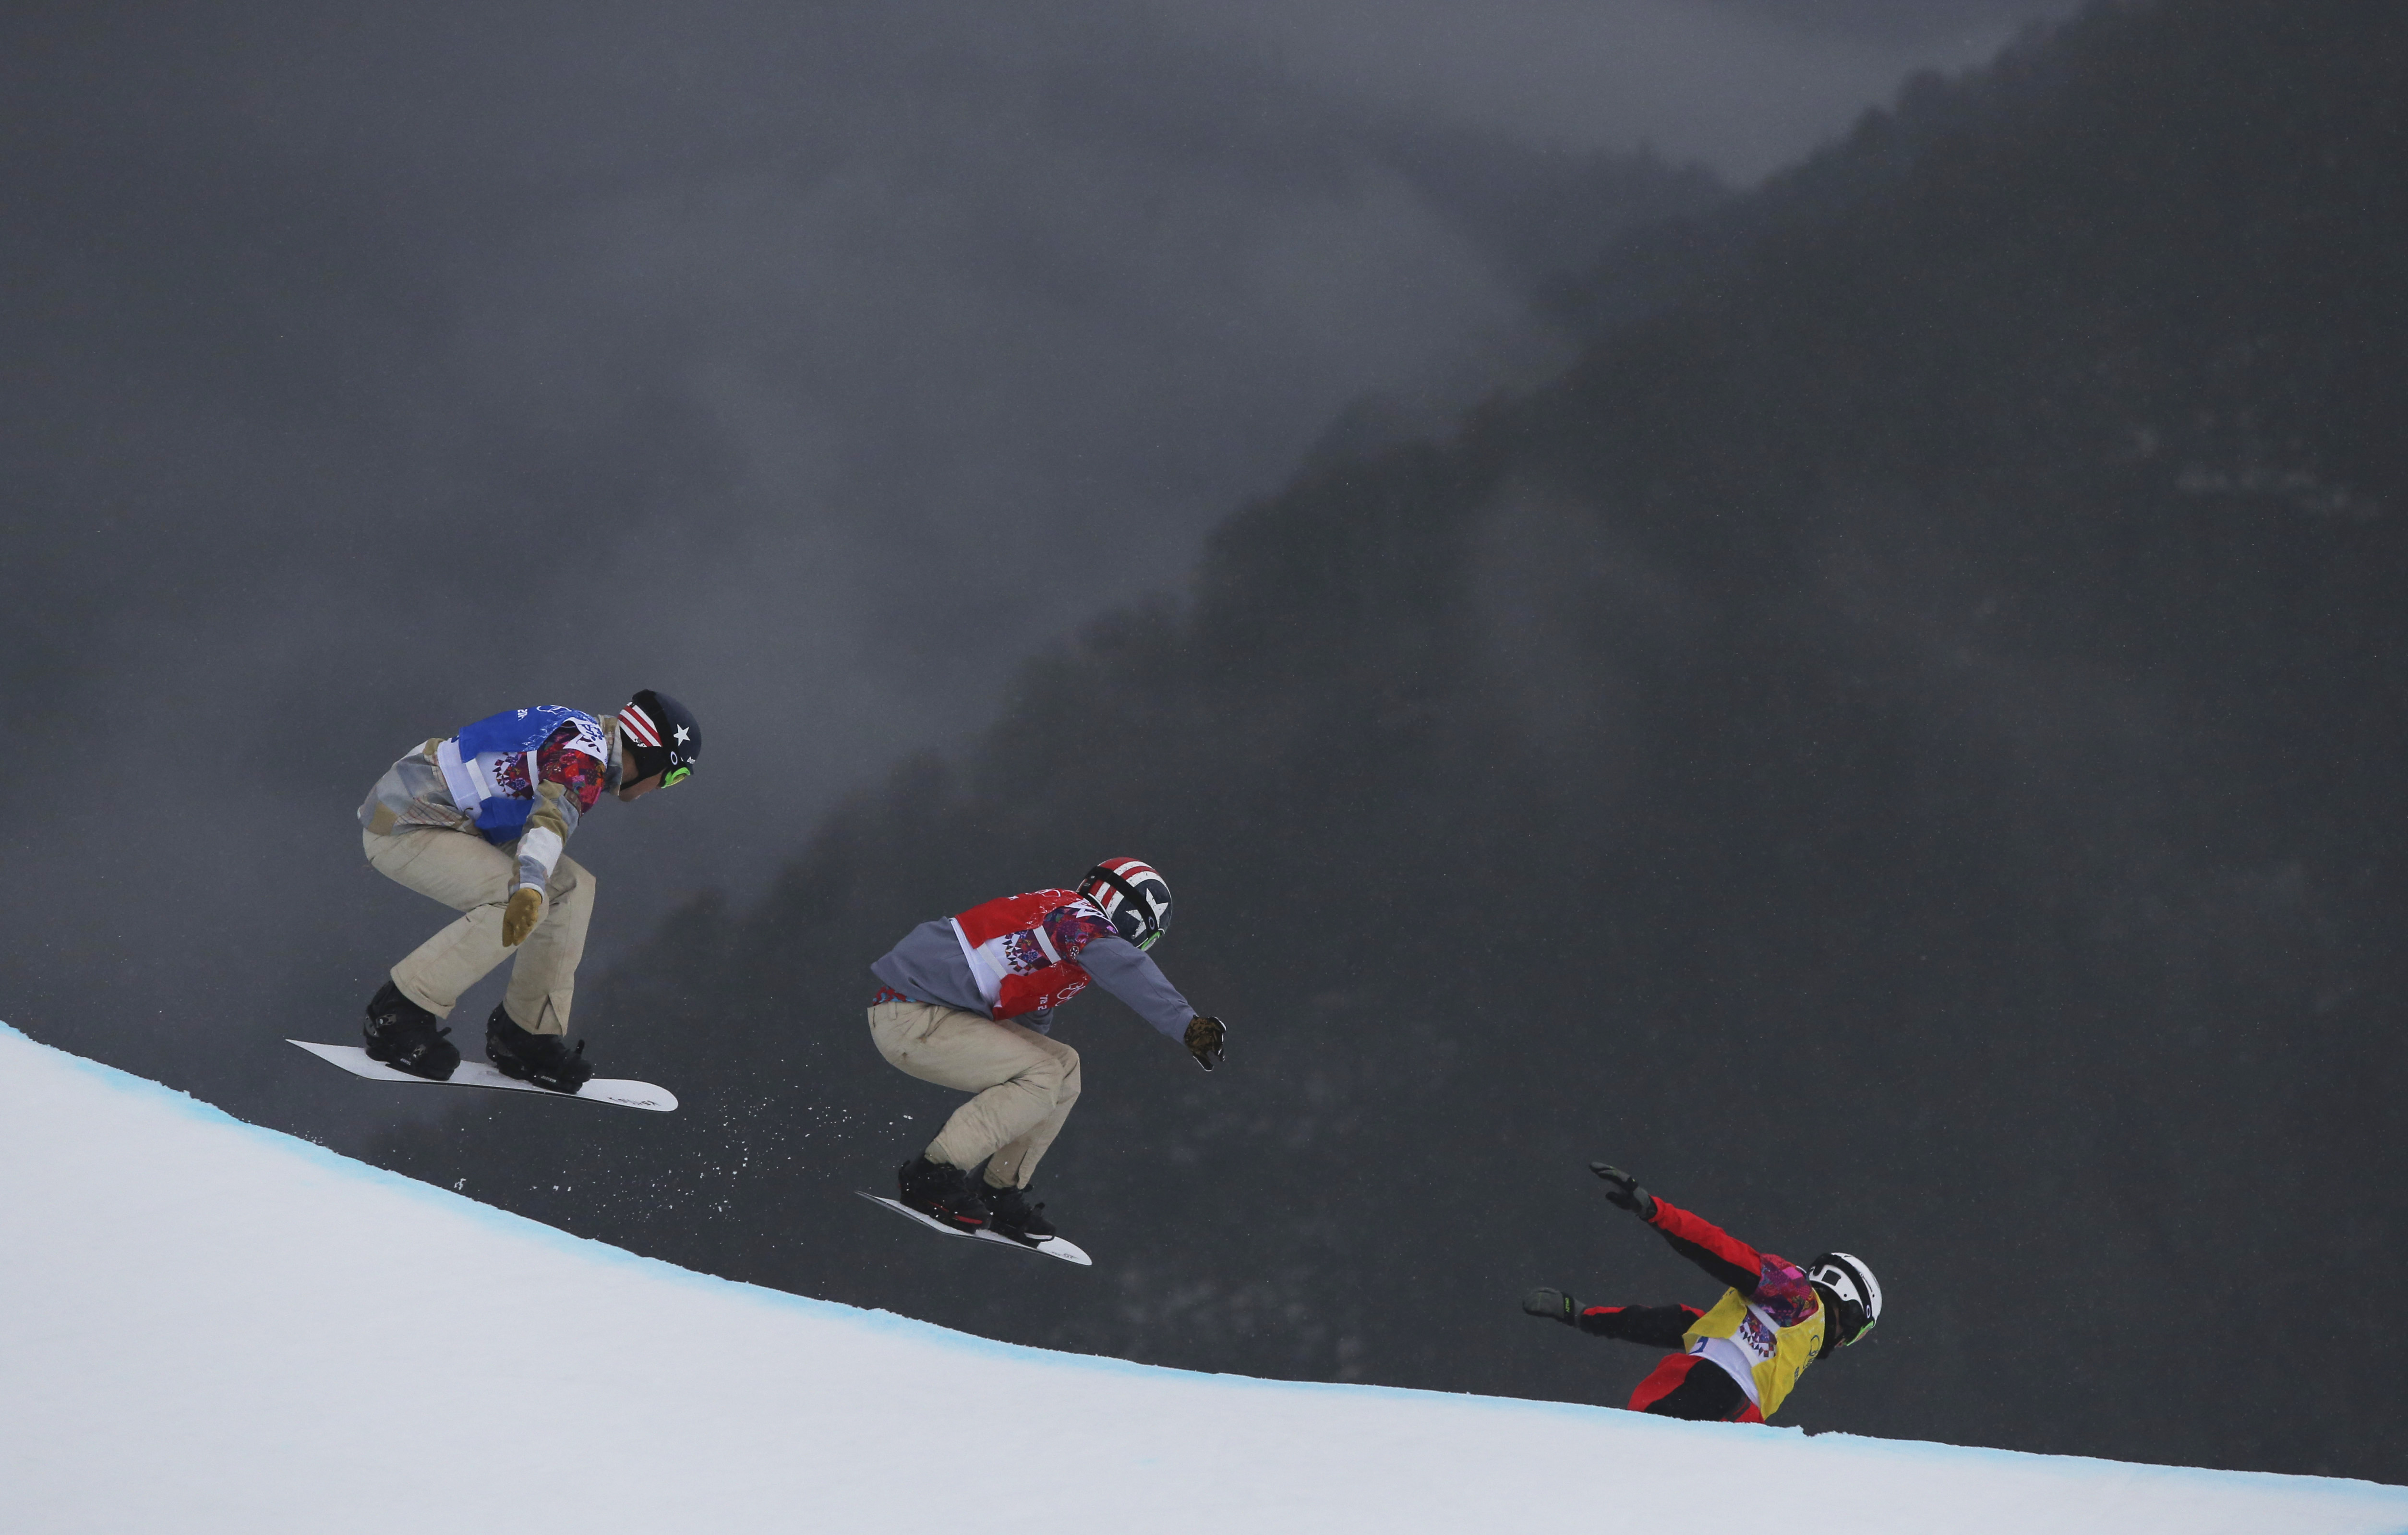 Alex Deibold of the United States, Trevor Jacob of the United States and Norway's Stian Sivertzen go off a drop during the first men's snowboard cross semifinal  at the 2014 Winter Olympics, Feb. 18, 2014.